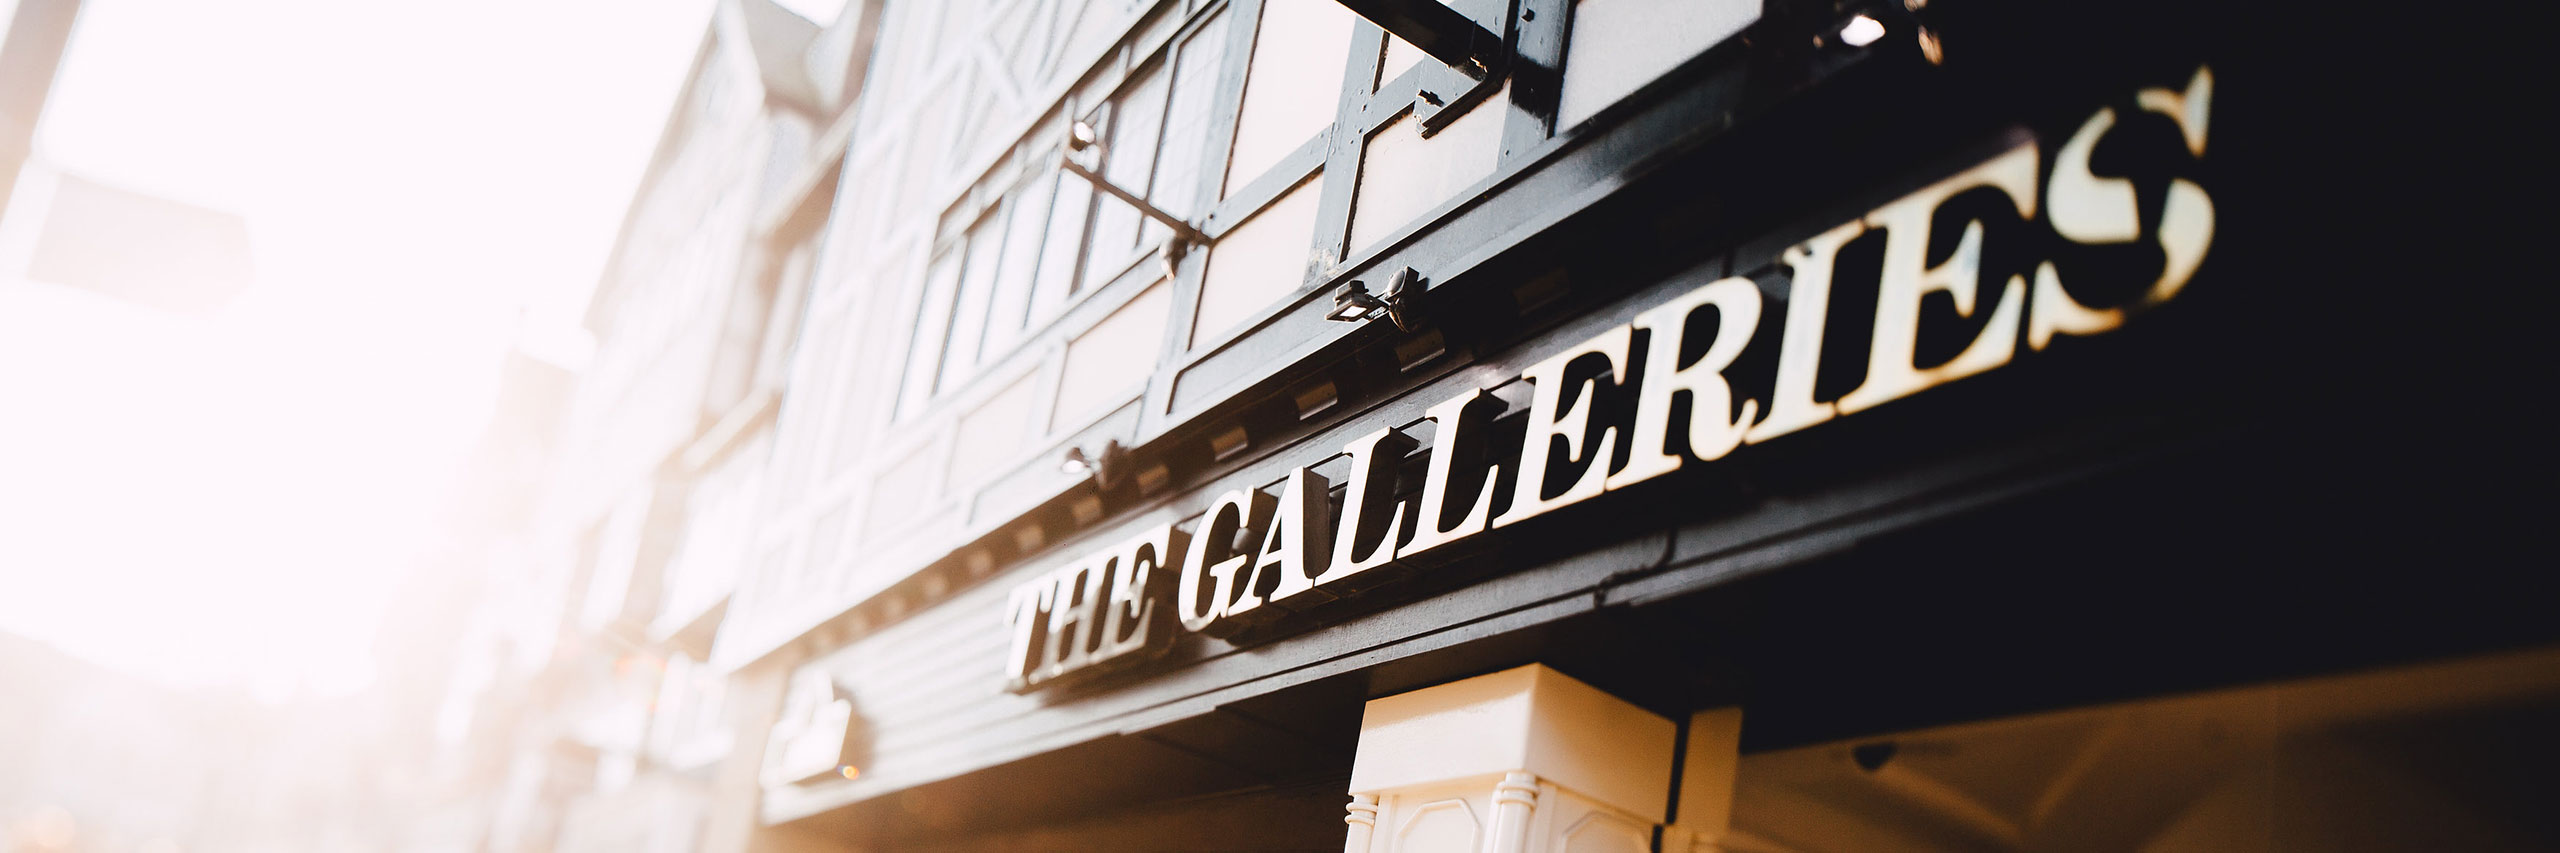 the-galleries